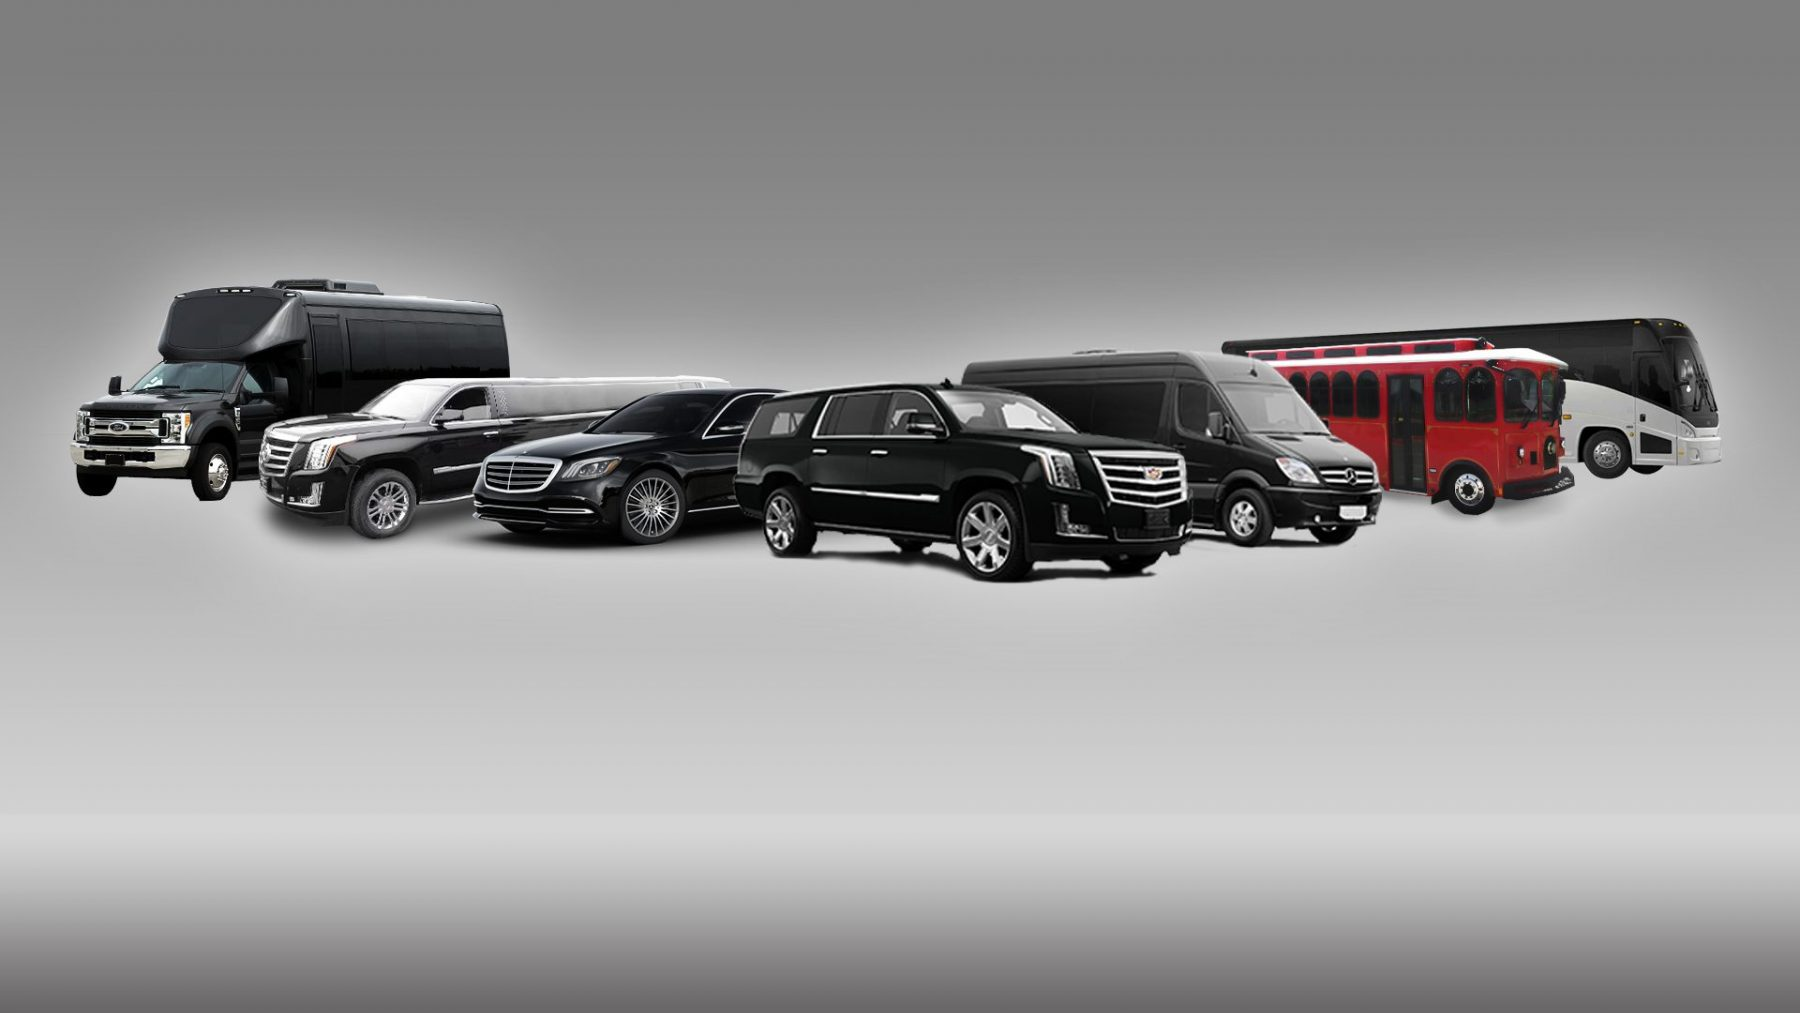 Dallas Luxury Limousine & Trolley Bus Service - IGPORT LIMOS